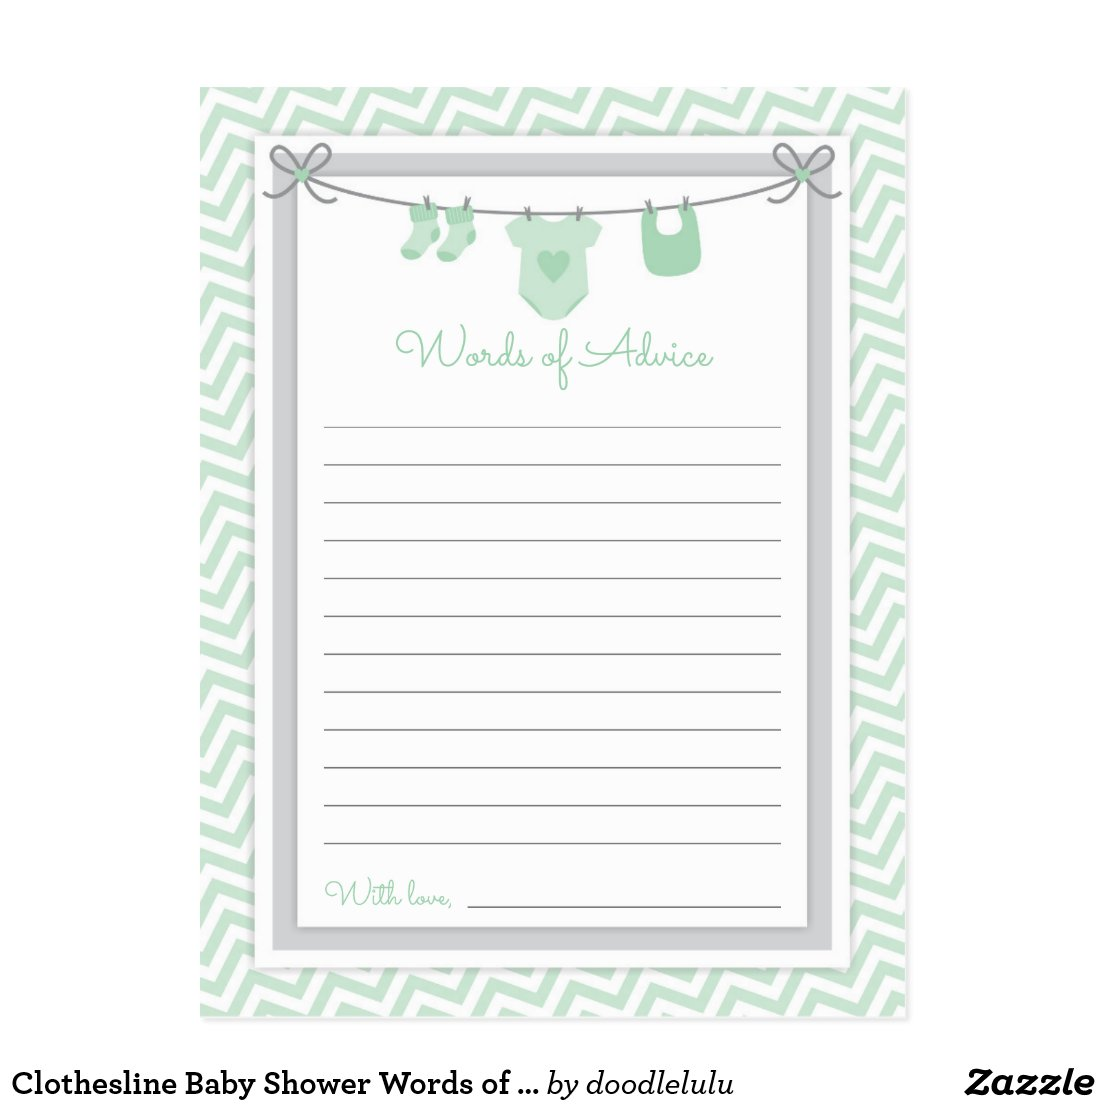 Clothesline Baby Shower Words of Advice green-gray Postcard